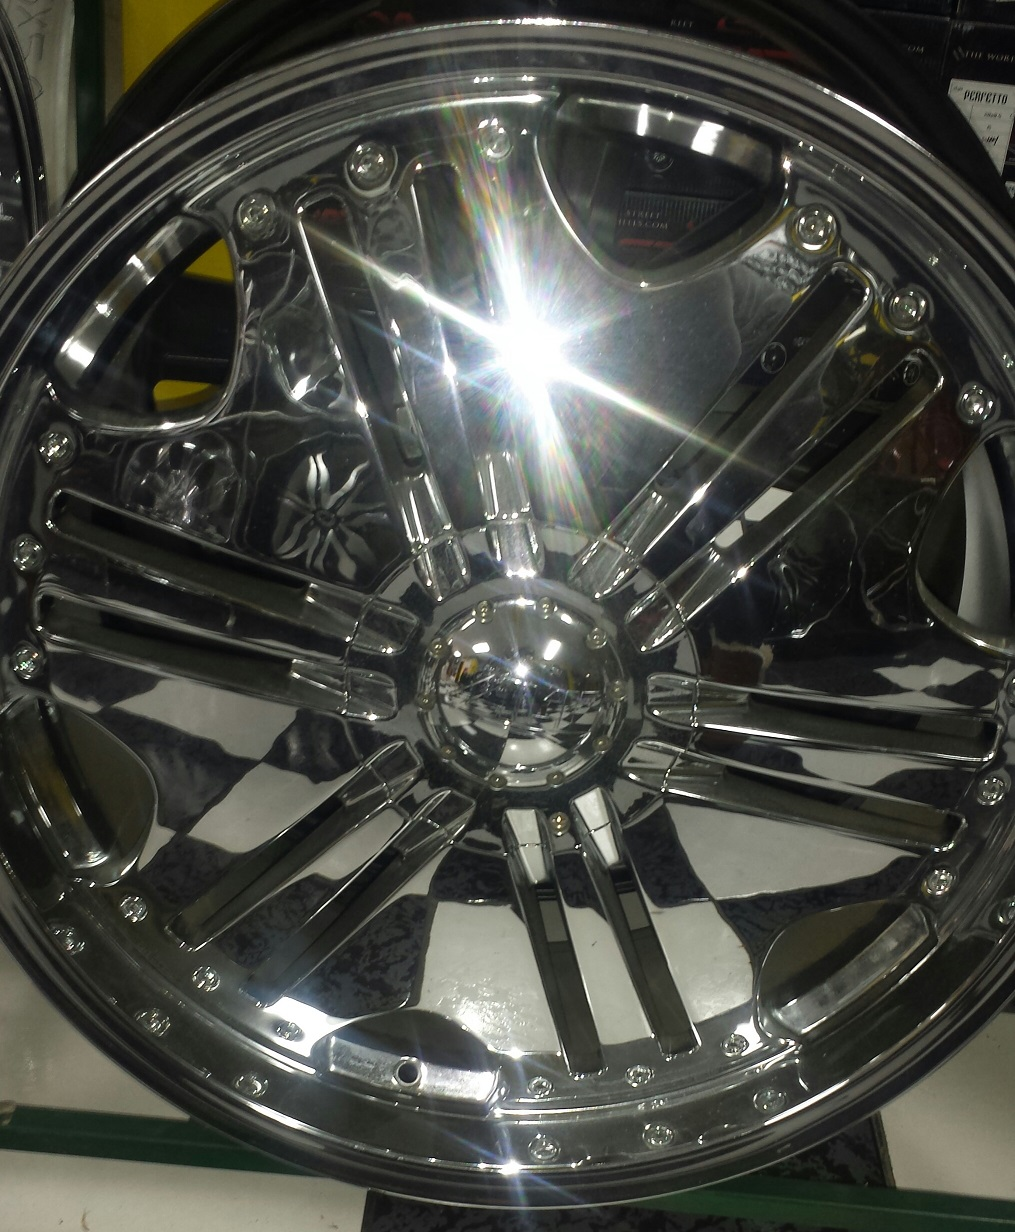 Wheels on special brand name ALT 22x95 bolt pattern 6x139 TWO LOCATIONS Business website ww